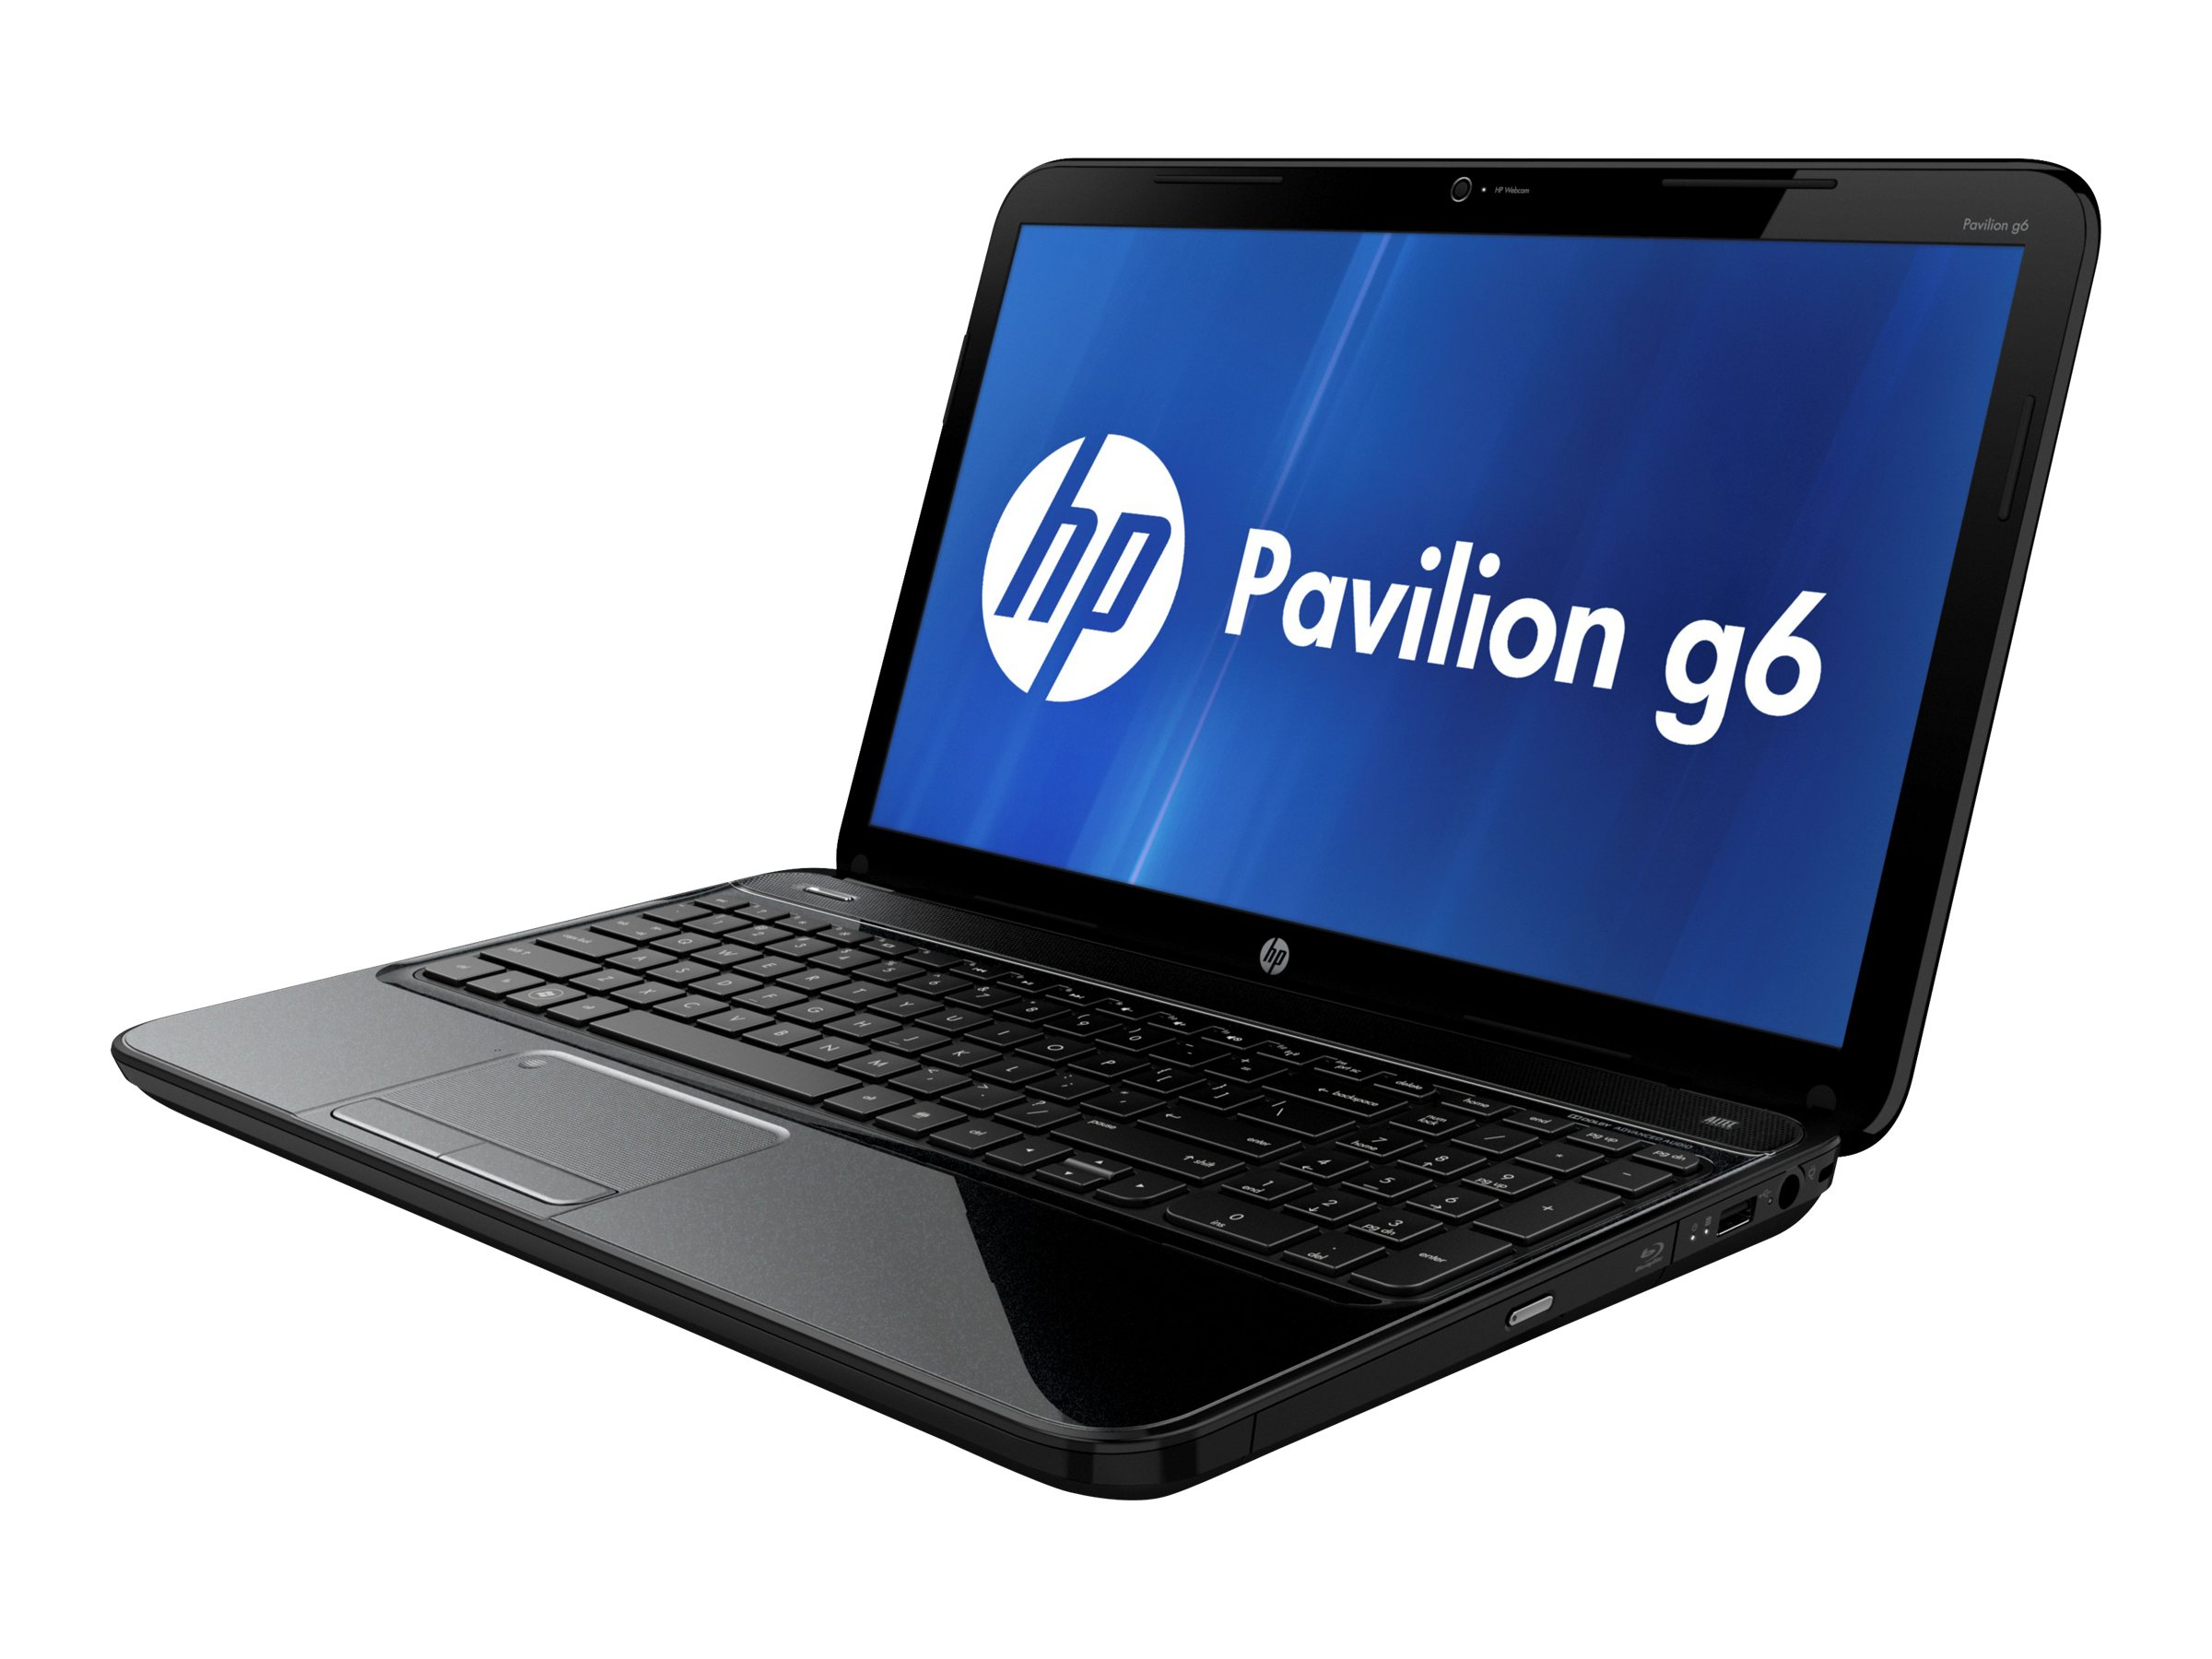 HP Pavilion g6-2260us : 2.4GHz Core i3 15.6in display, D1B38UA#ABA, 15175743, Notebooks